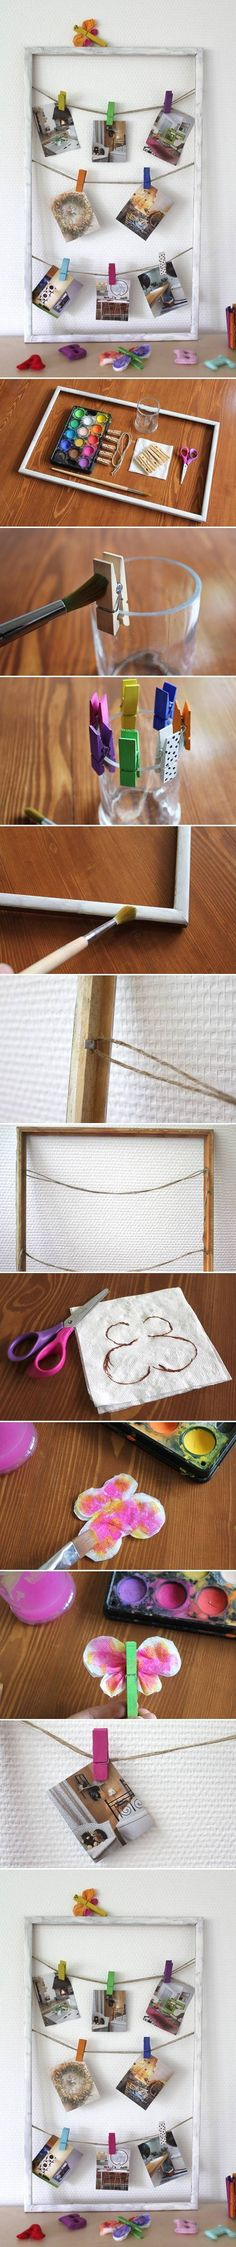 DIY Creative Hanging Picture Frame